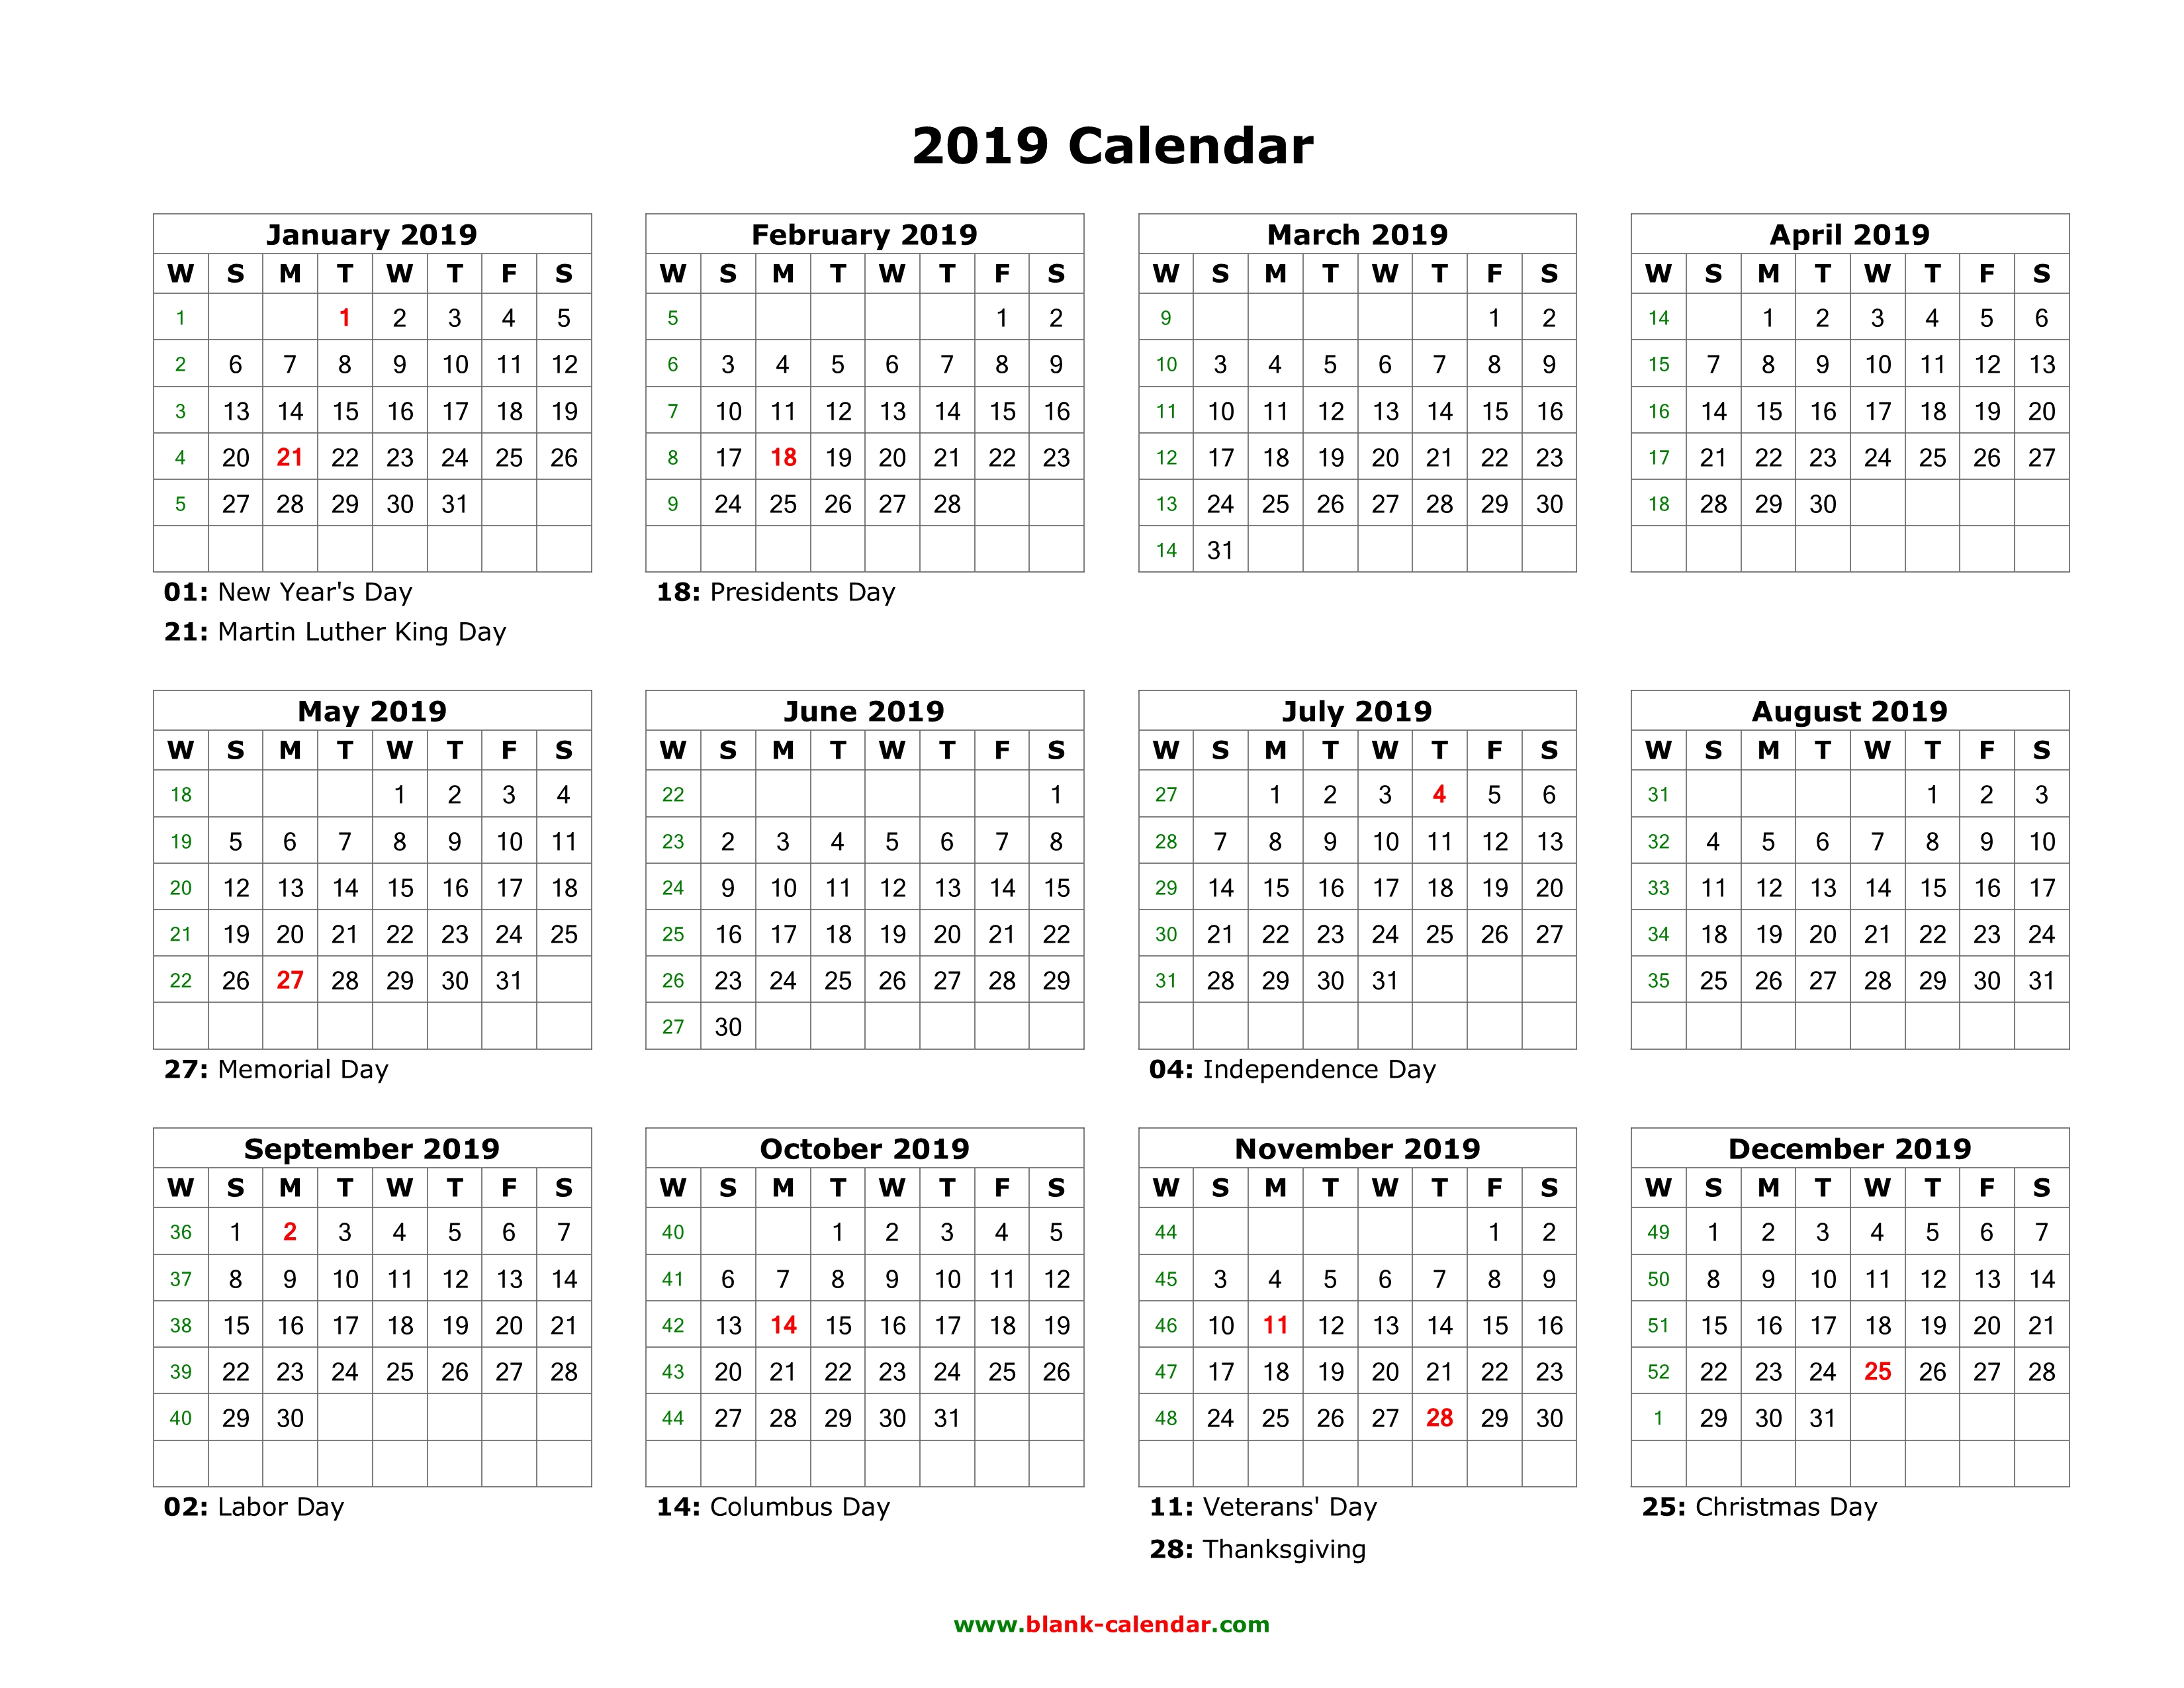 Download Blank Calendar 2019 With Us Holidays (12 Months On One Page